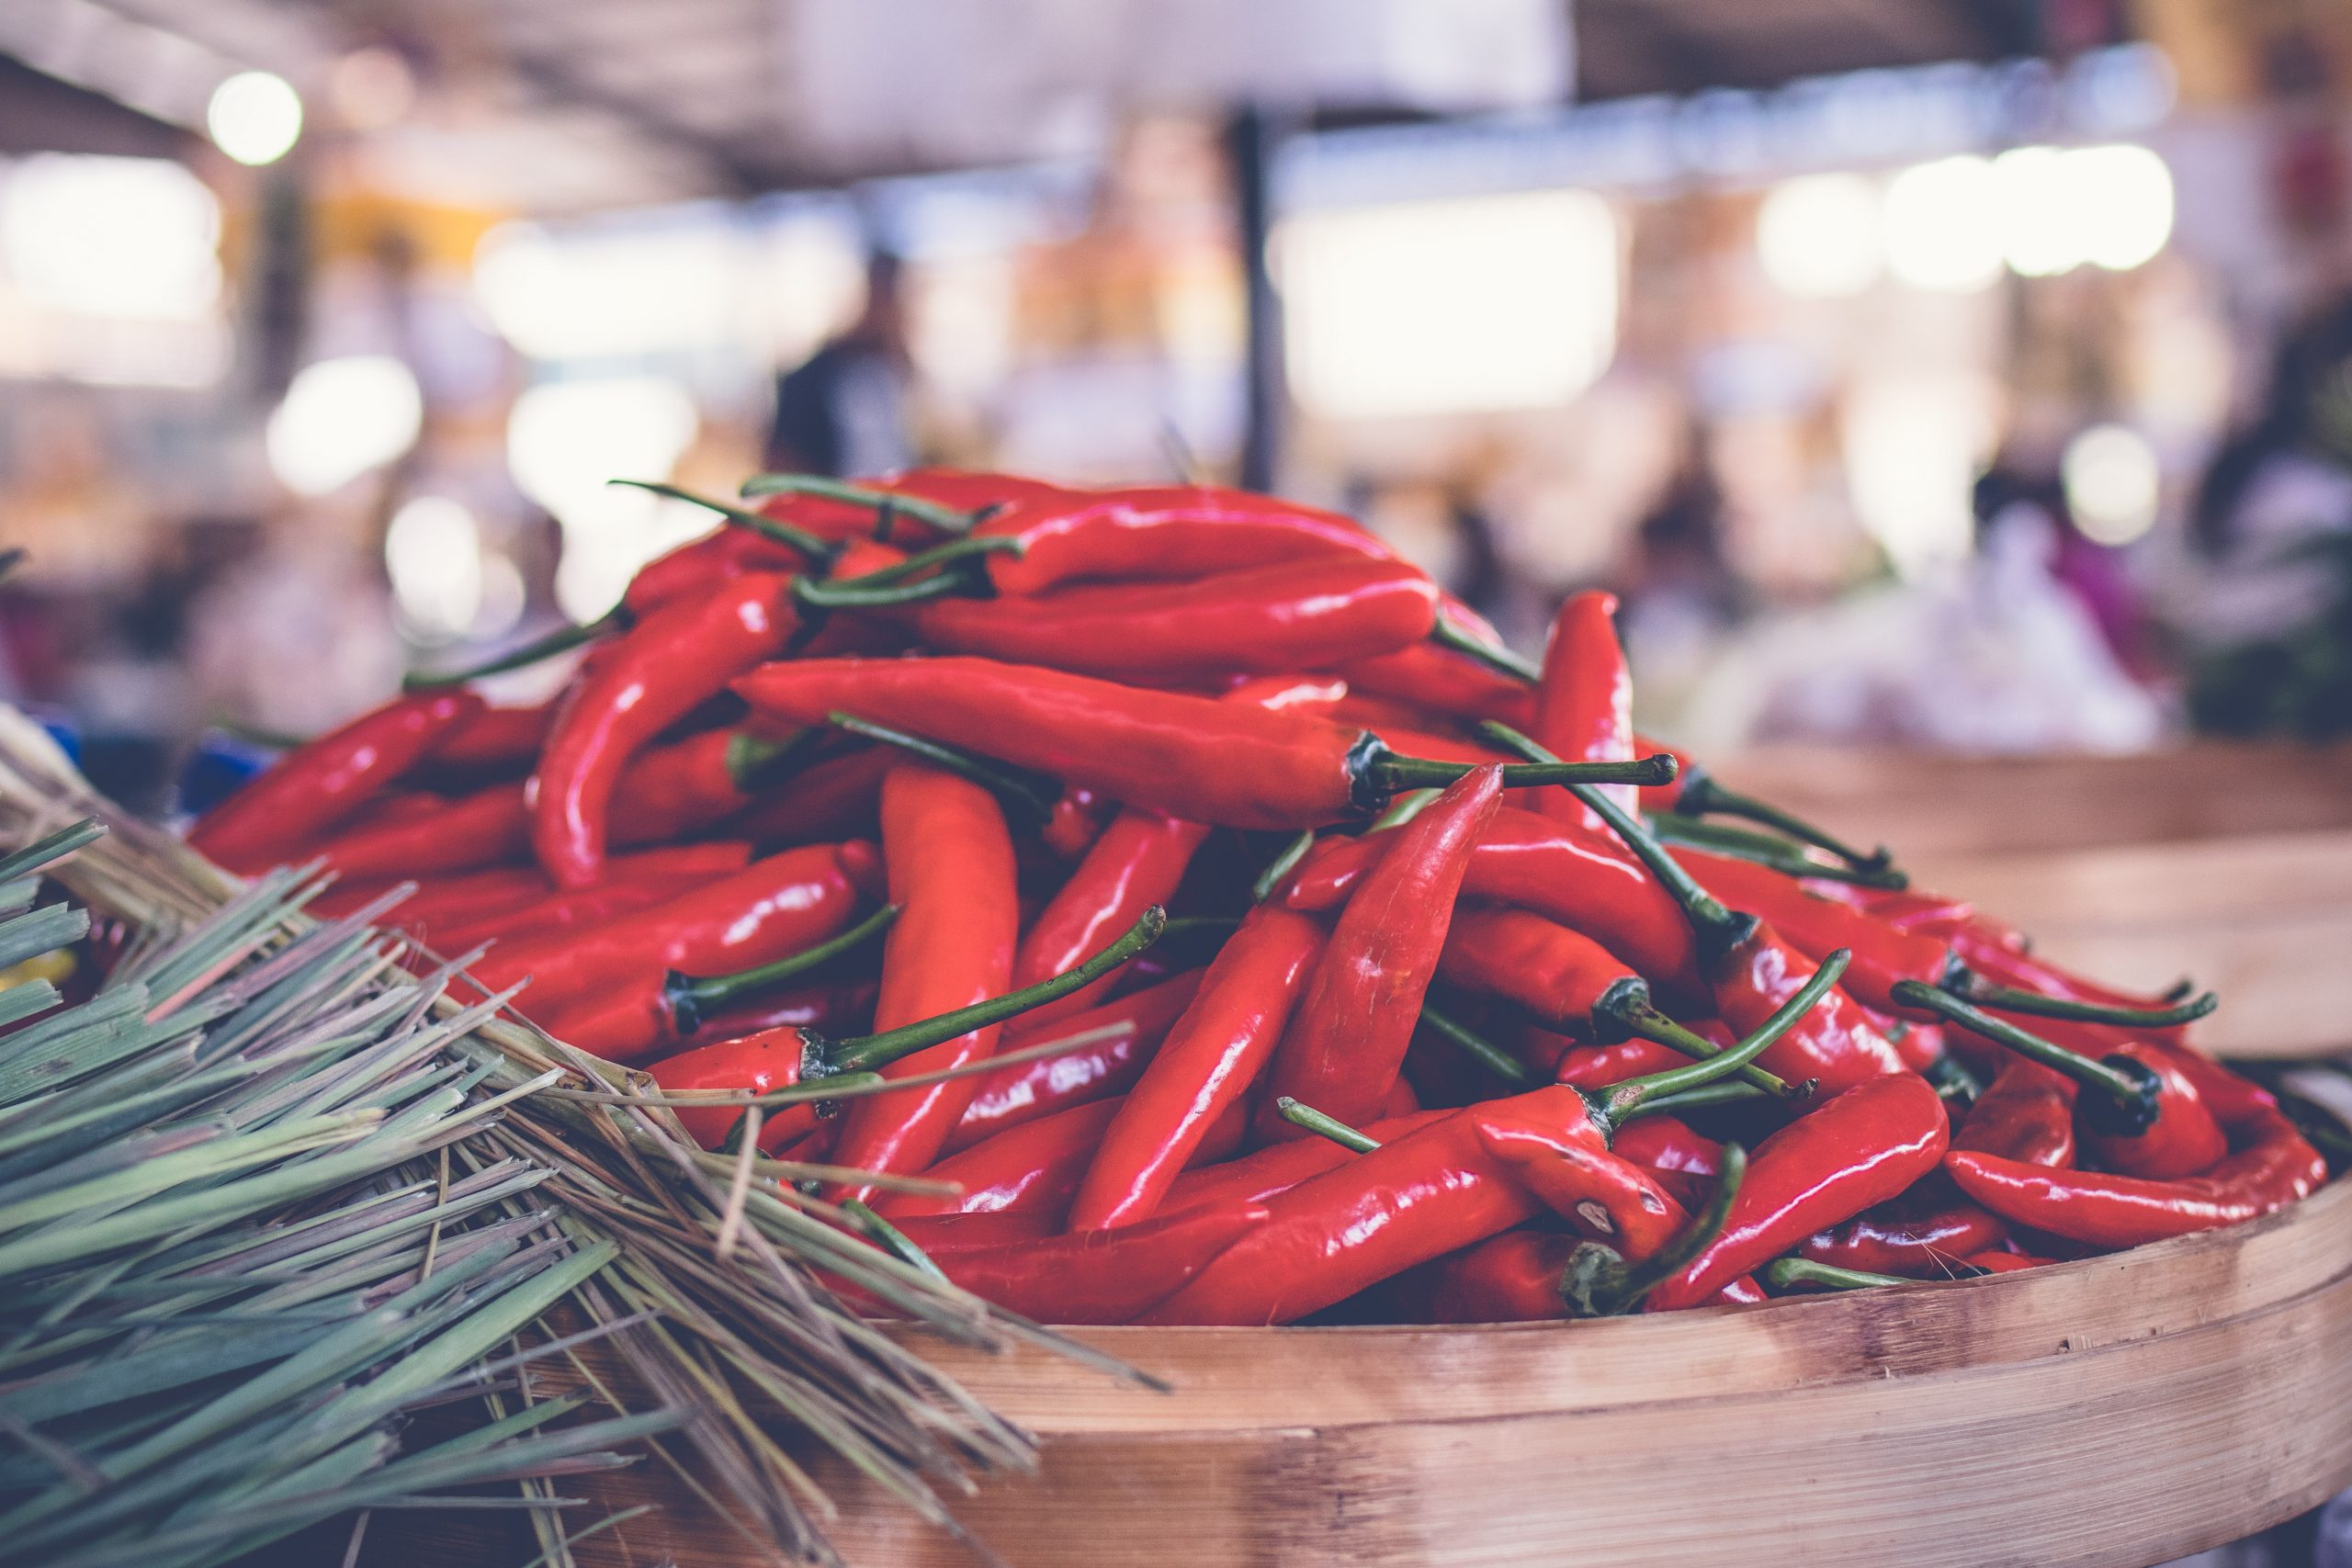 Chili peppers; acid, indigestion, and bloating.